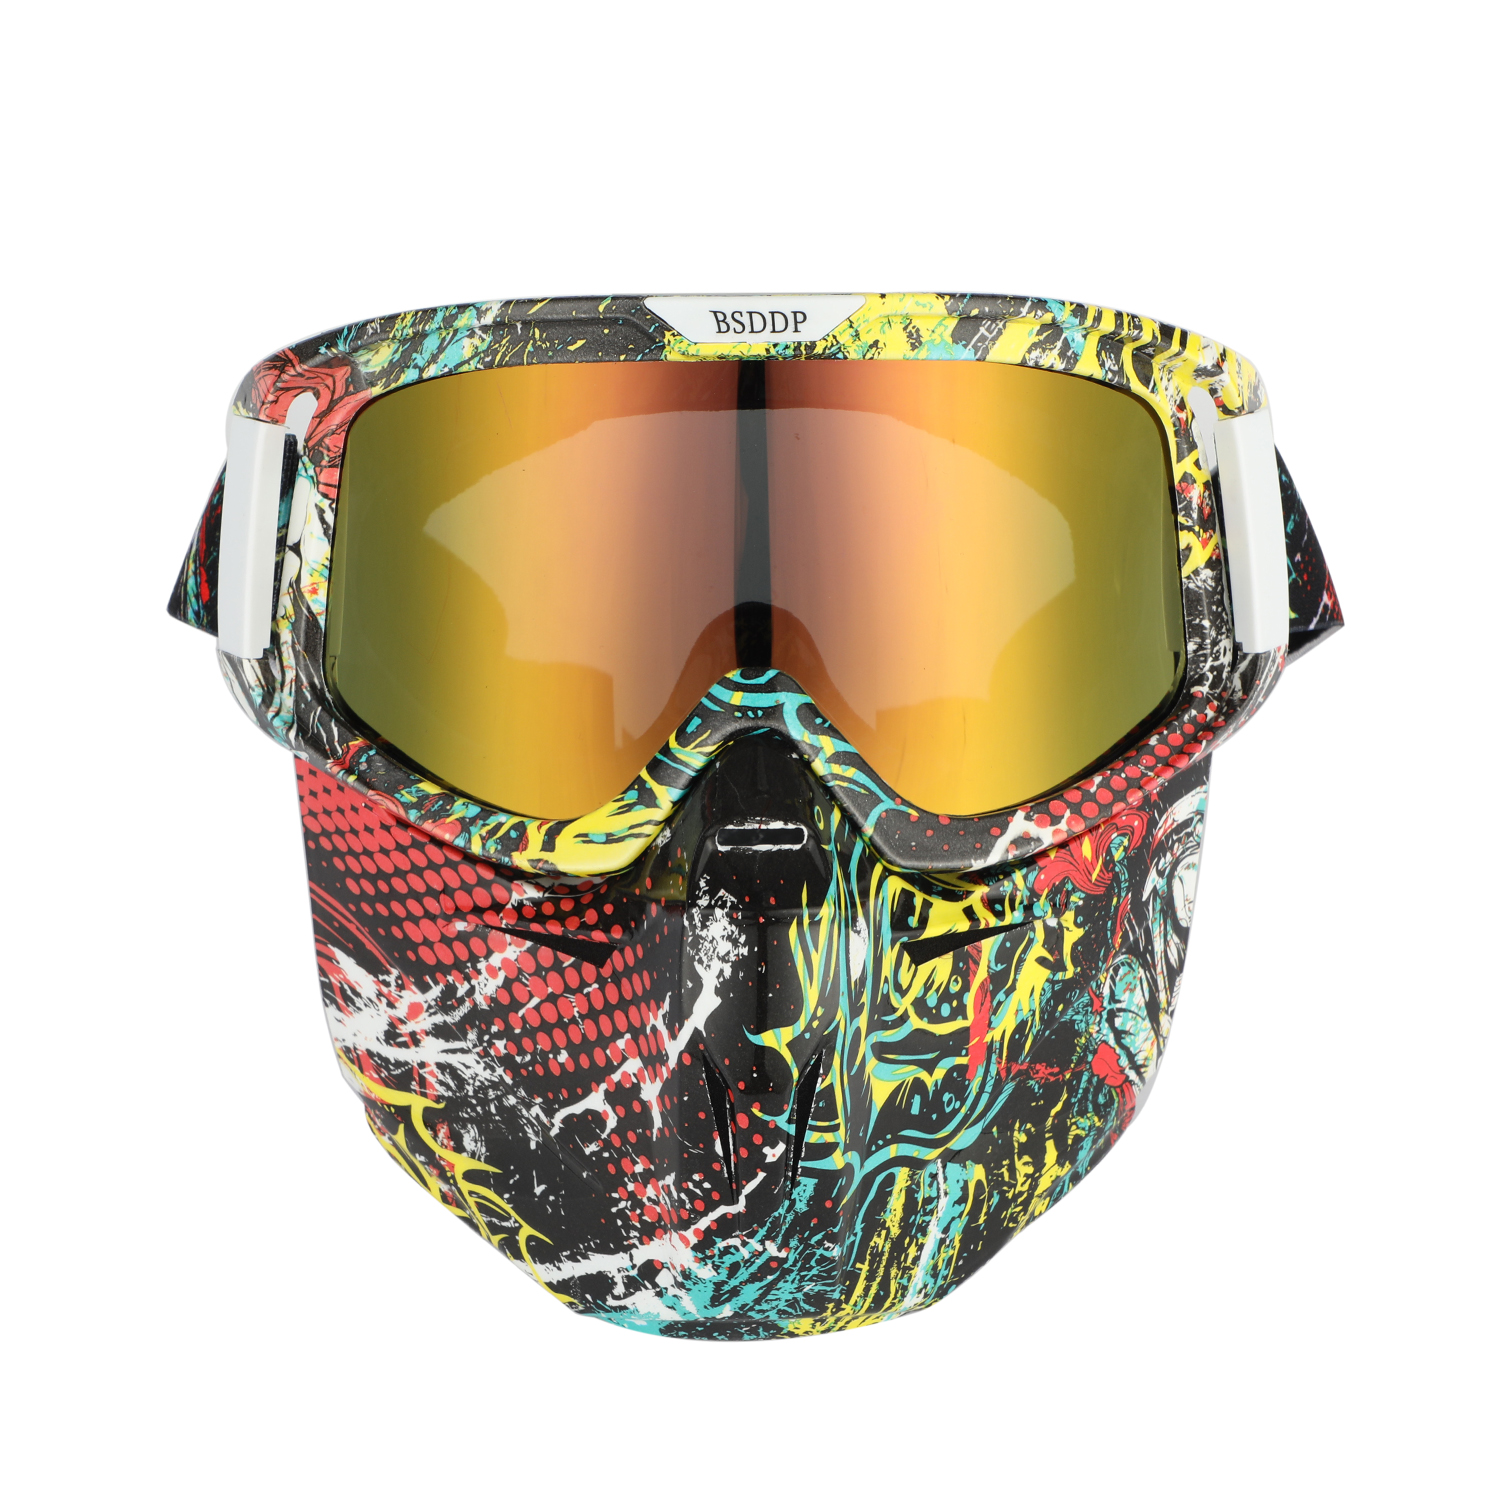 Cycling Motorcycle Riding Cross Country Eyewear Outdoor Activities Equipment Eye Protector Windproof Sand Locomotive Glasses|Cycling Eyewear| |  - title=